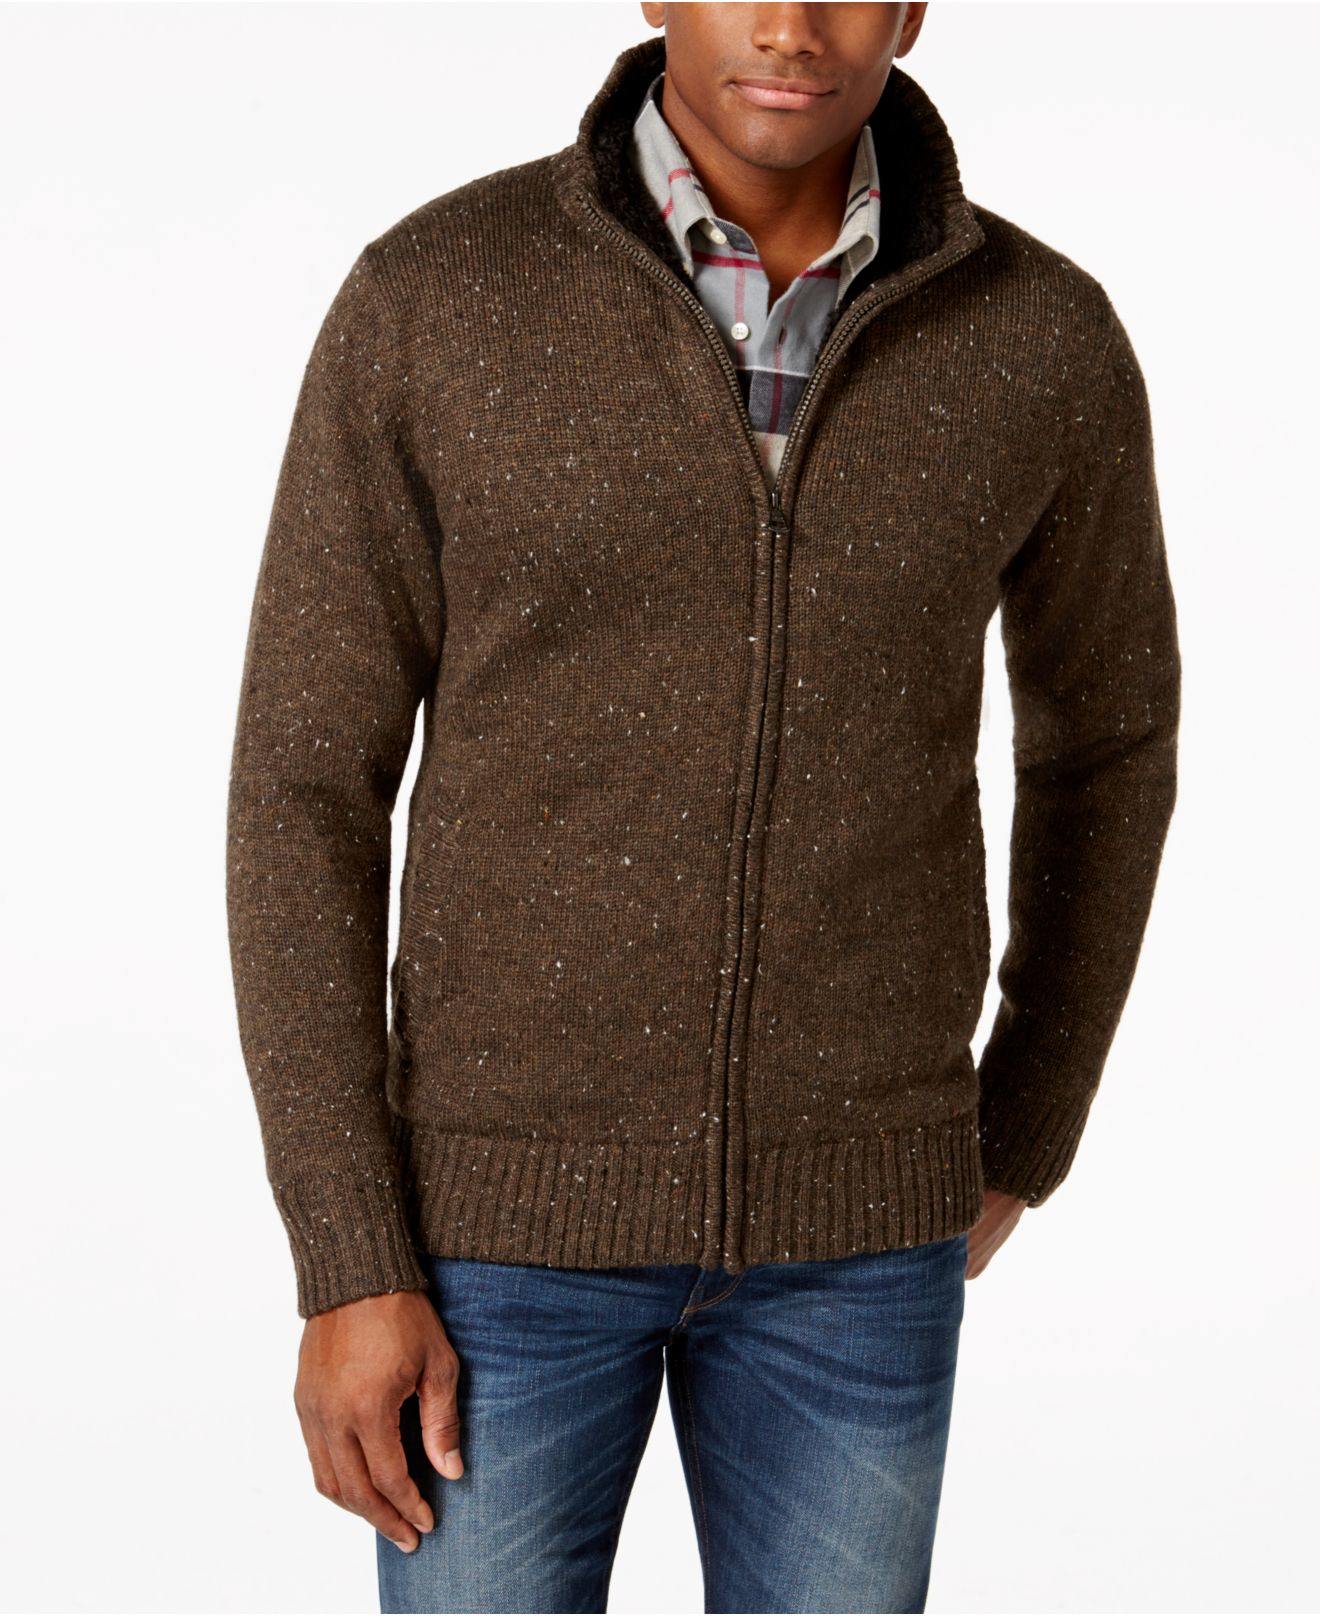 Weatherproof Zip-front Tweed Sweater Jacket in Brown for Men | Lyst